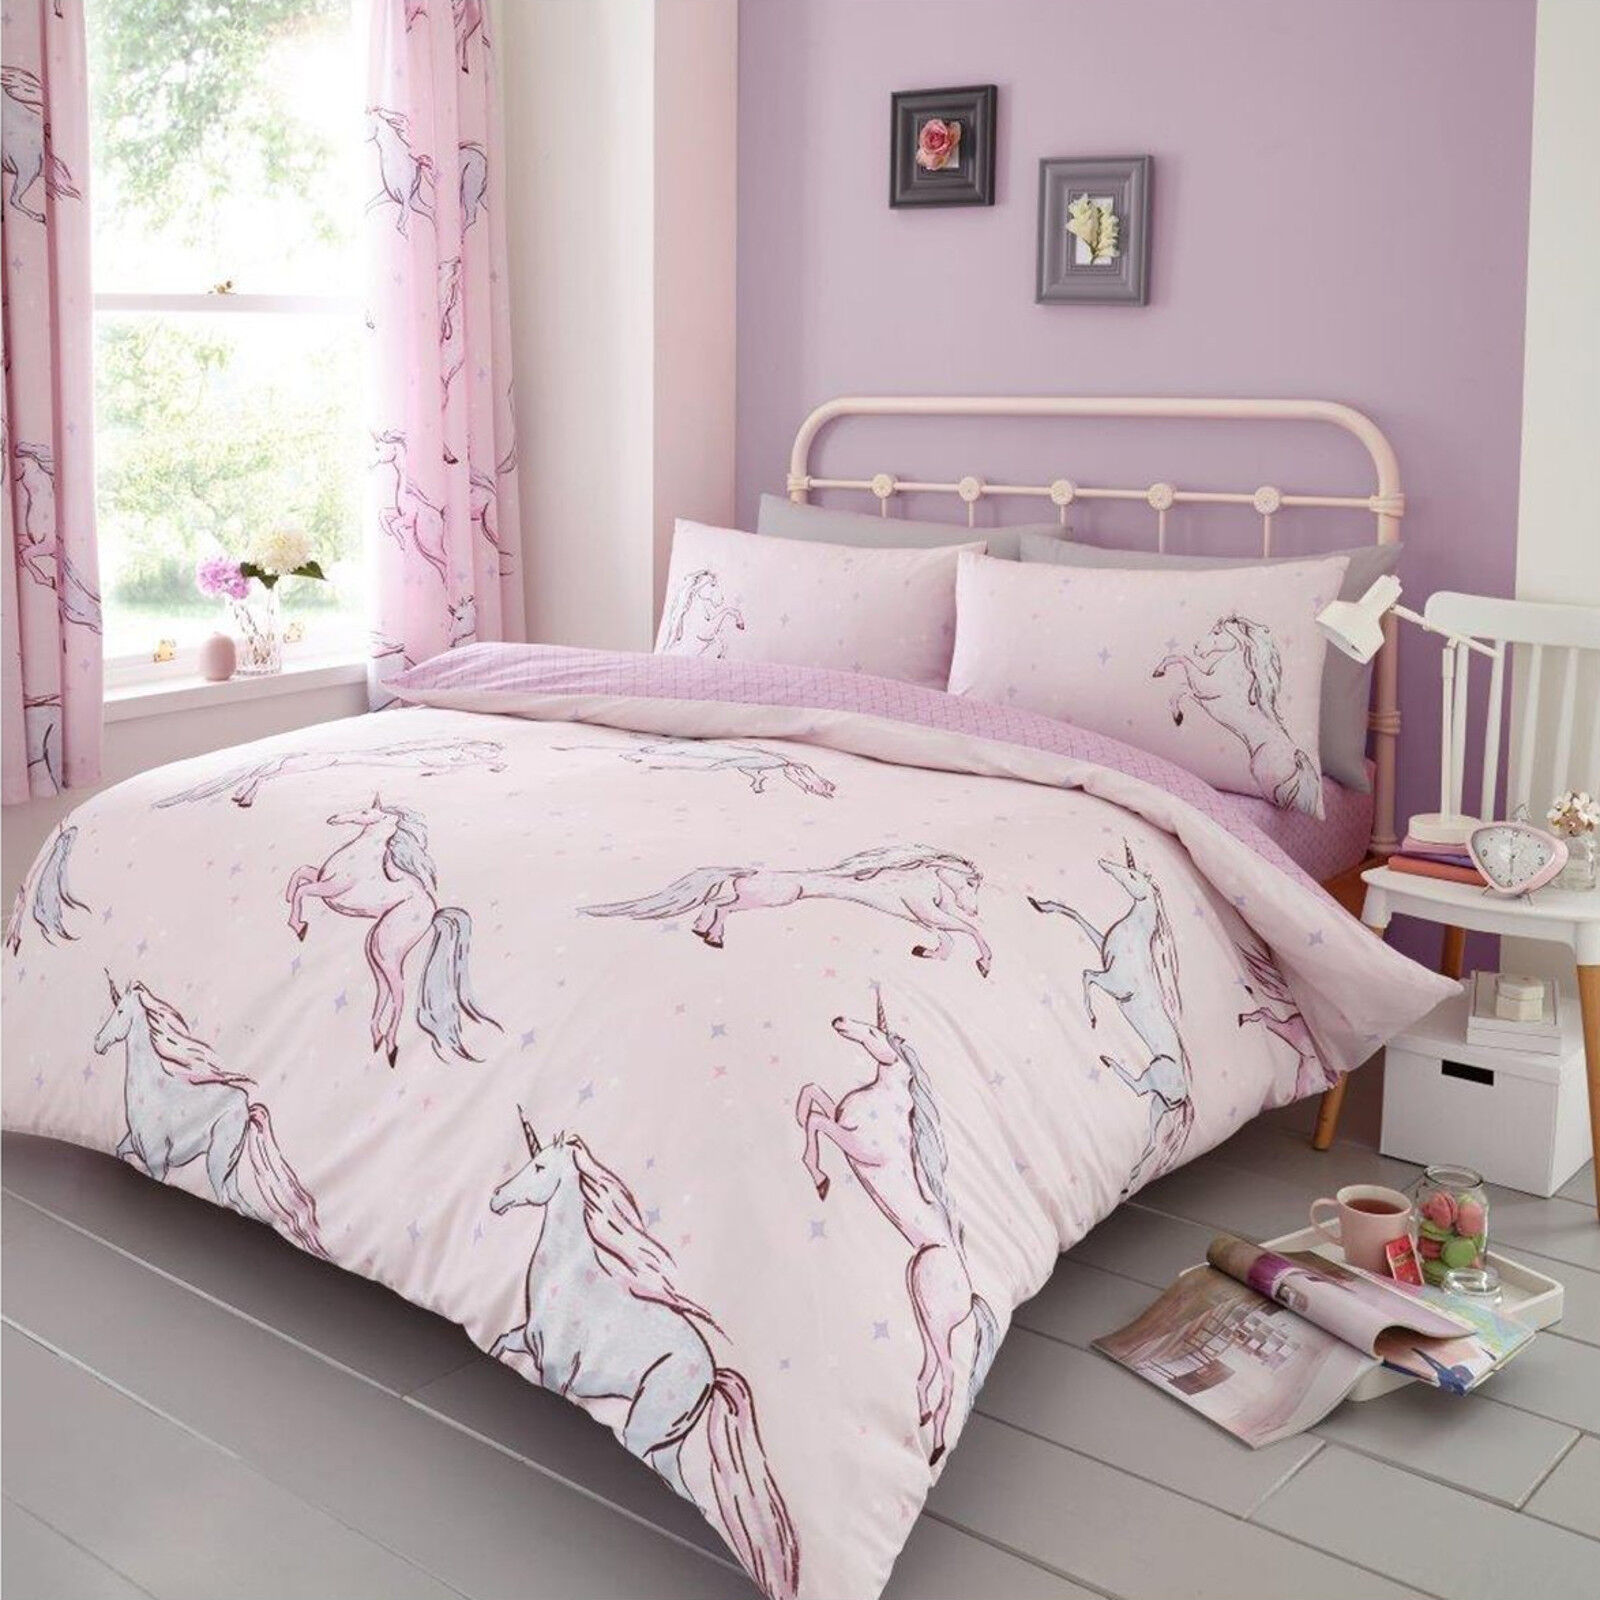 Unicorn Luxury King Duvet Cover Quilt Cover Bedding Set Pink With Pillow Cases Ebay